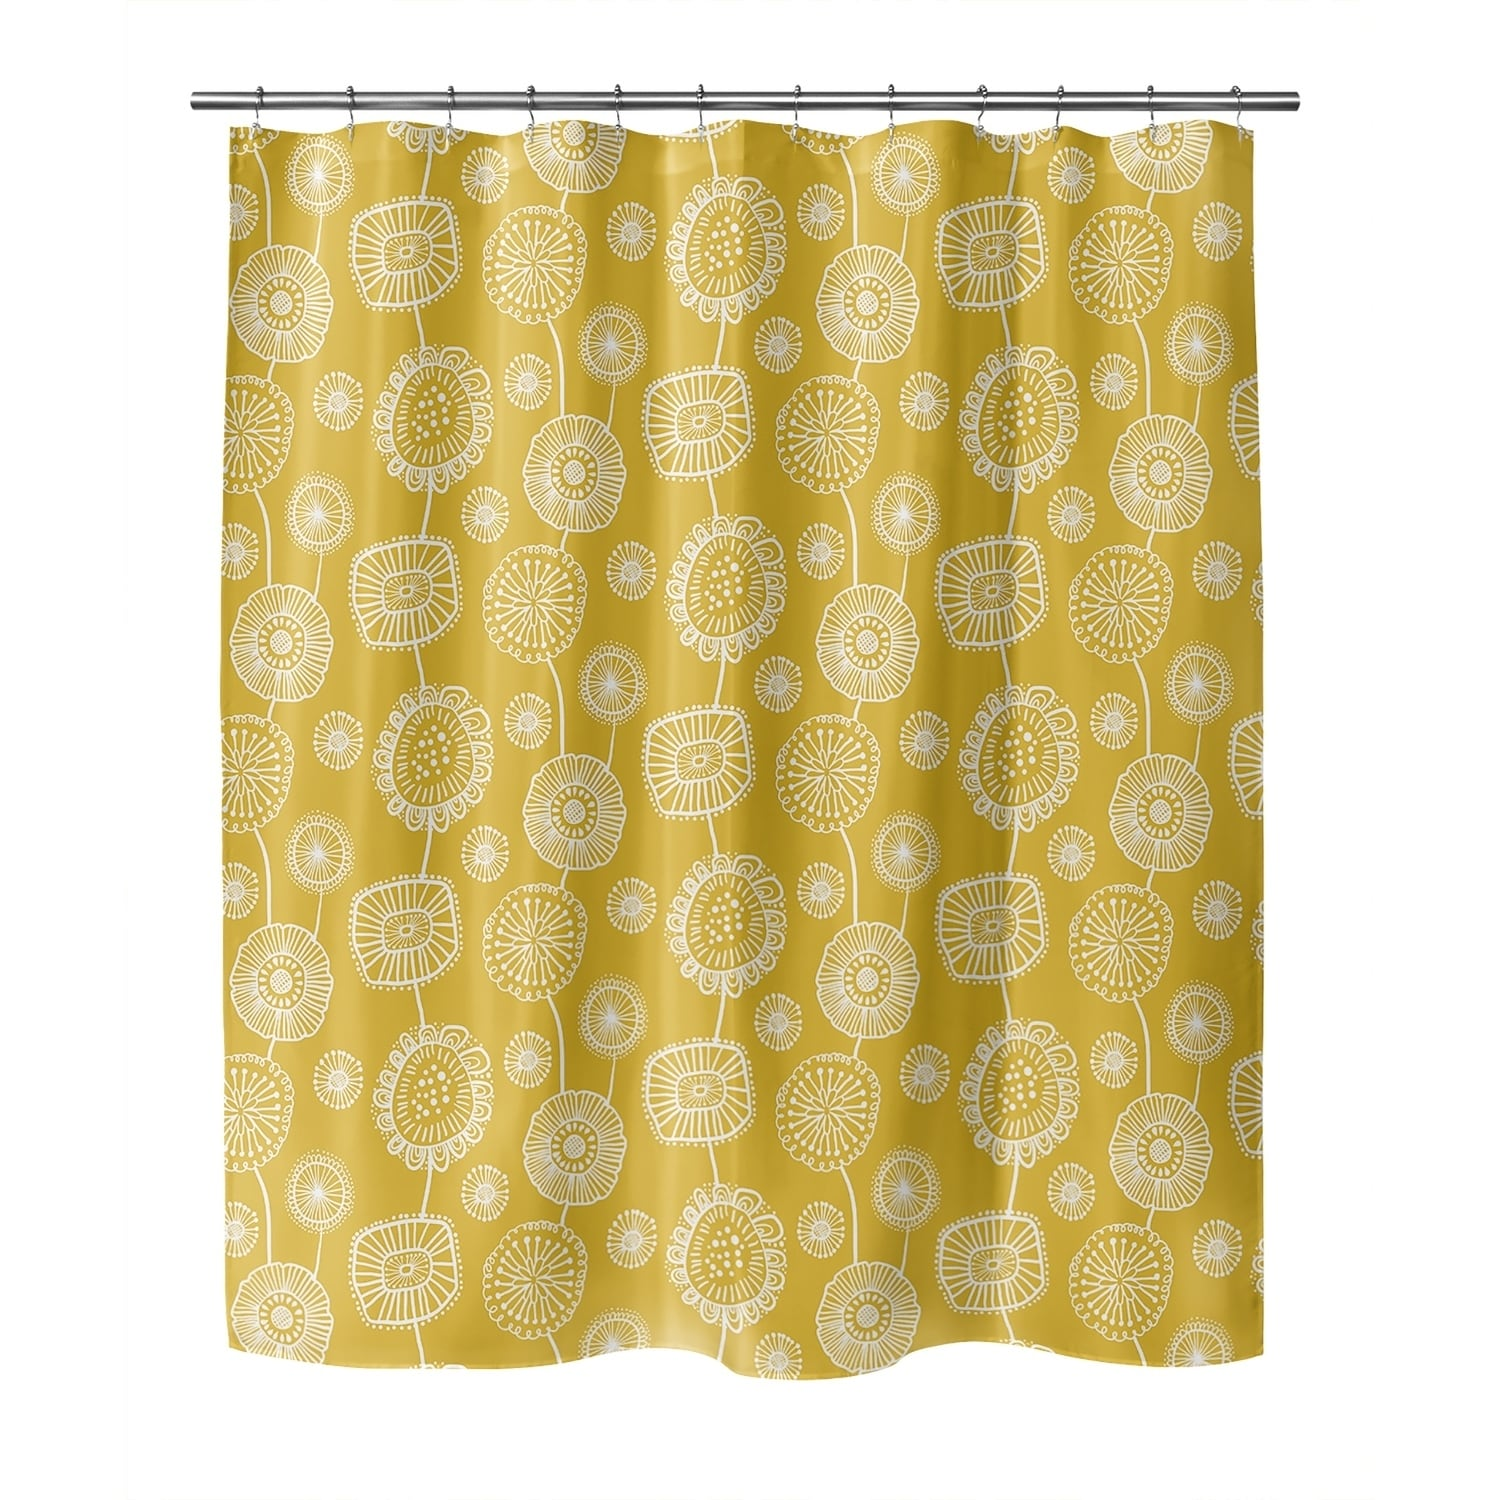 doodle floral yellow shower curtain by kavka designs